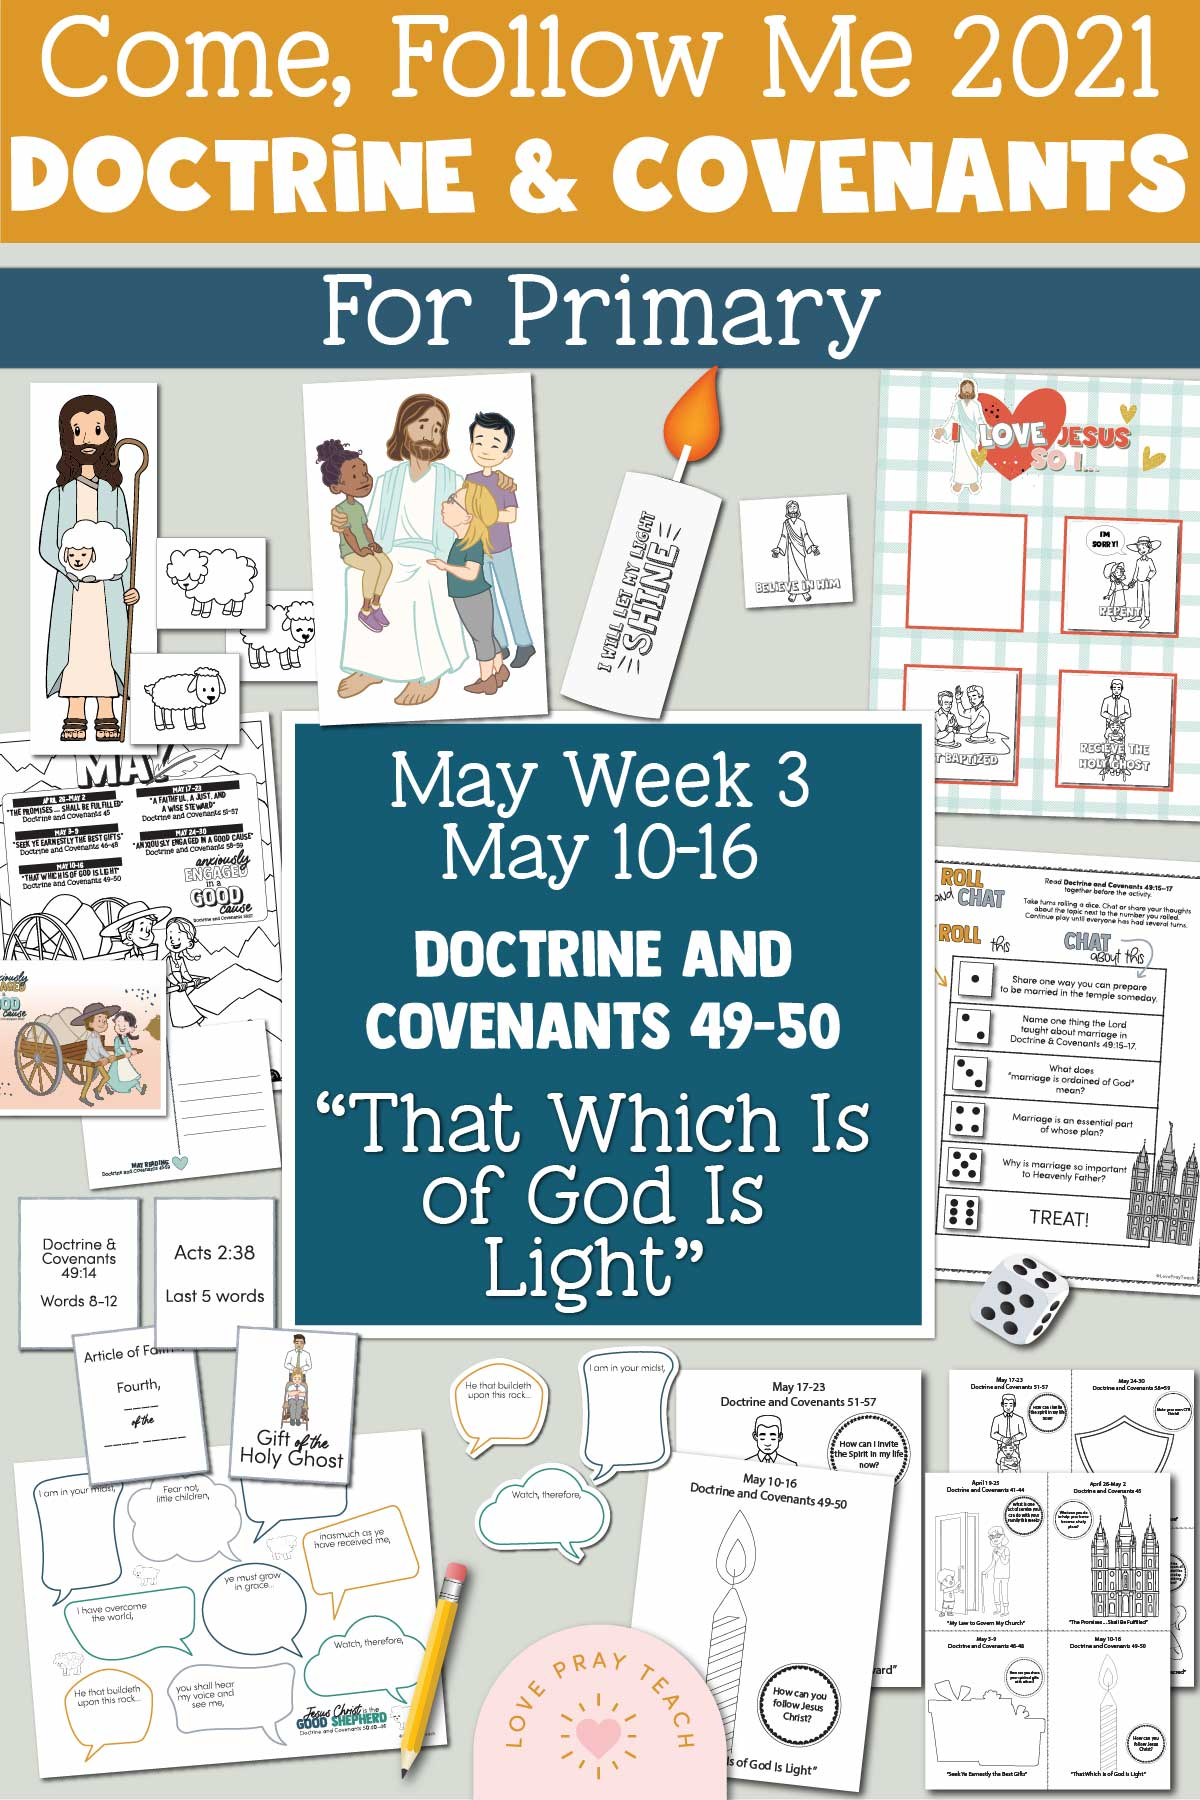 "Come, Follow Me for Primary 2021 May Week 3 Doctrine and Covenants 49-50 ""That Which Is of God Is Light"" Printable Lesson Materials"